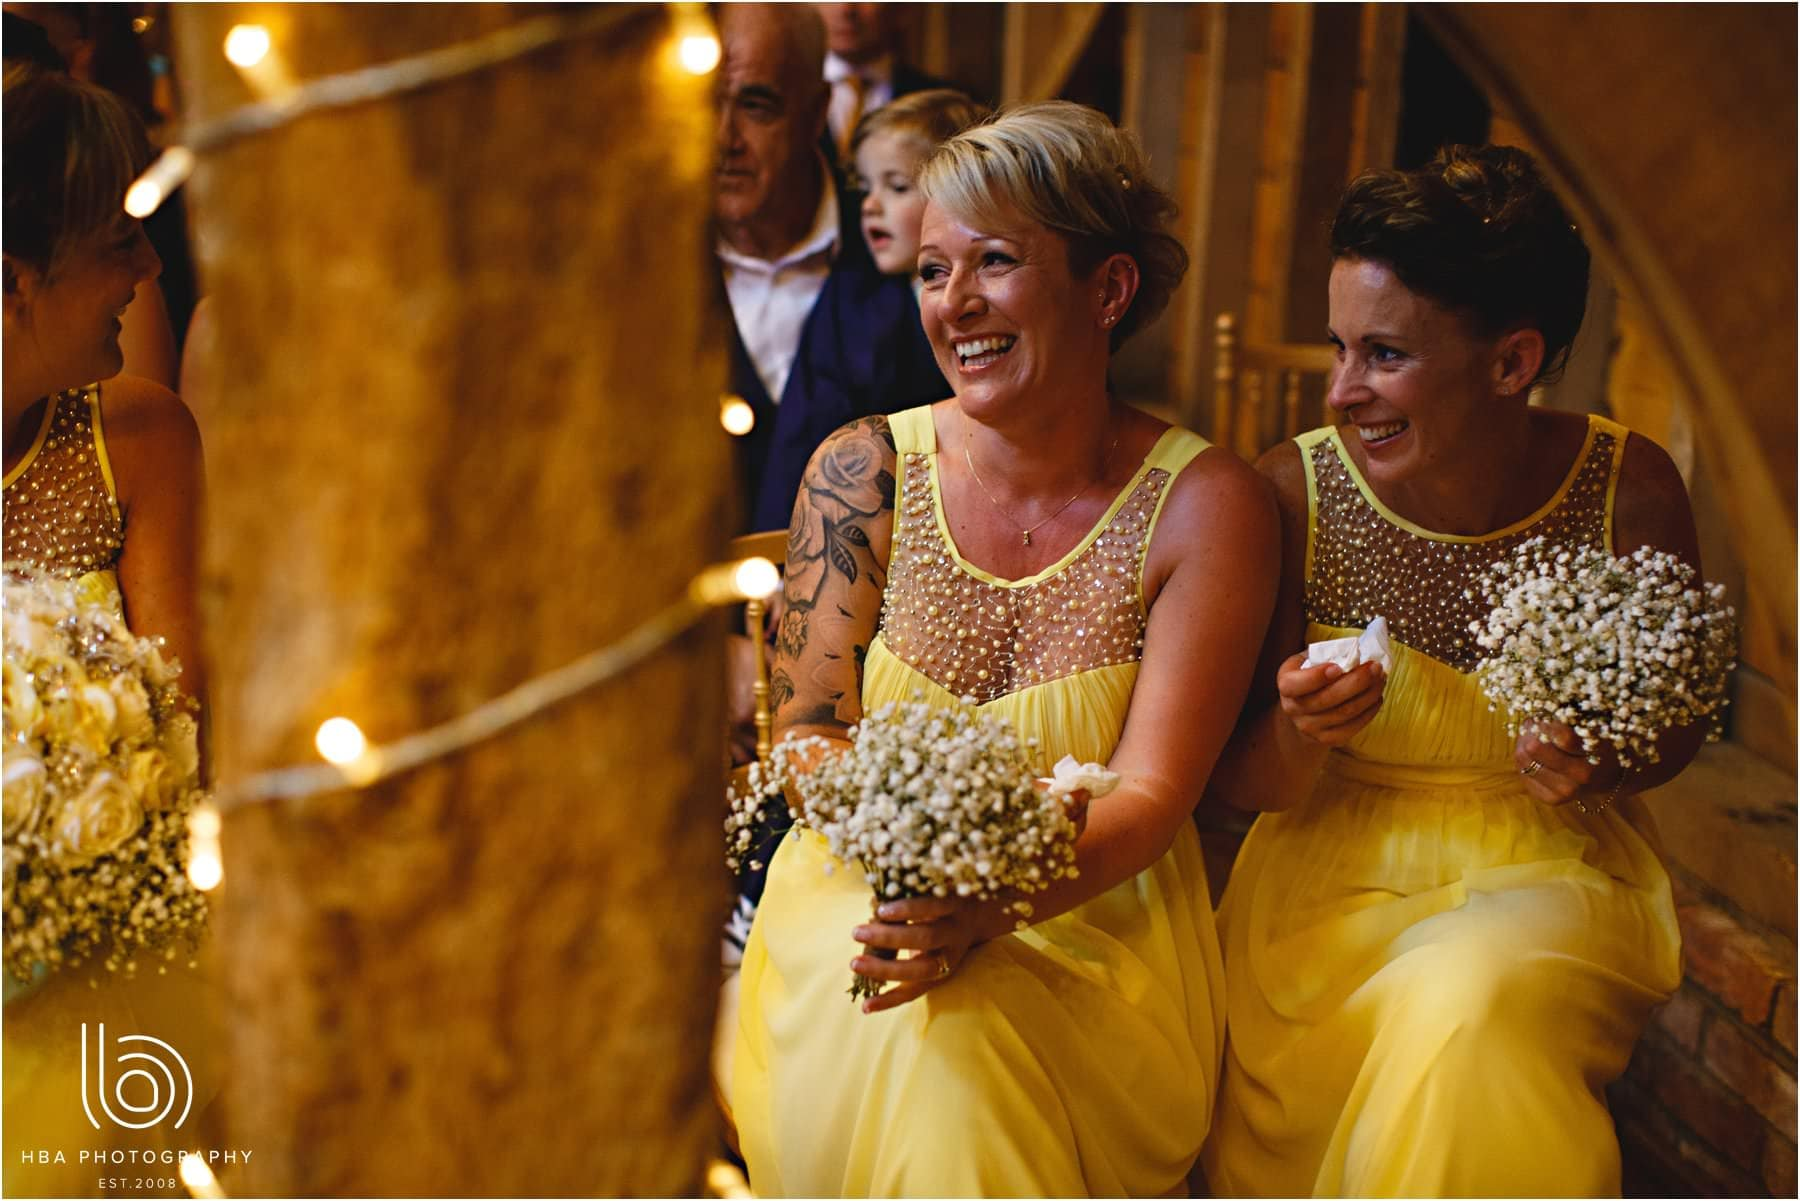 the bridesmaids in tears during the ceremony